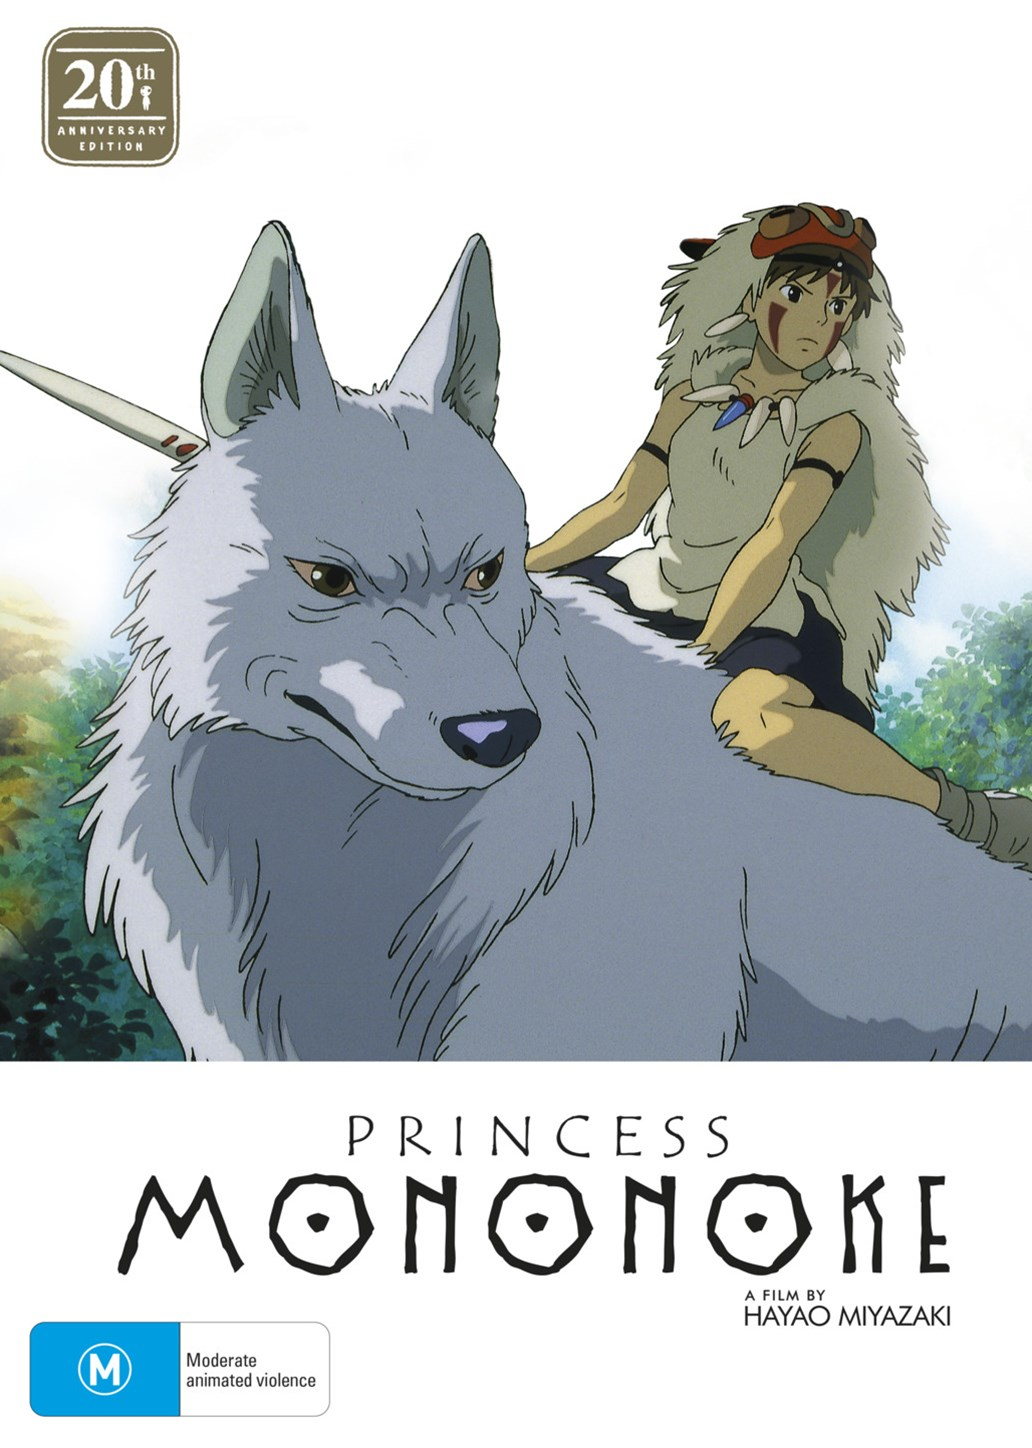 Princess Mononoke 20th Anniversary Ltd Ed (Blu-Ray & DVD Combo with Artbook)